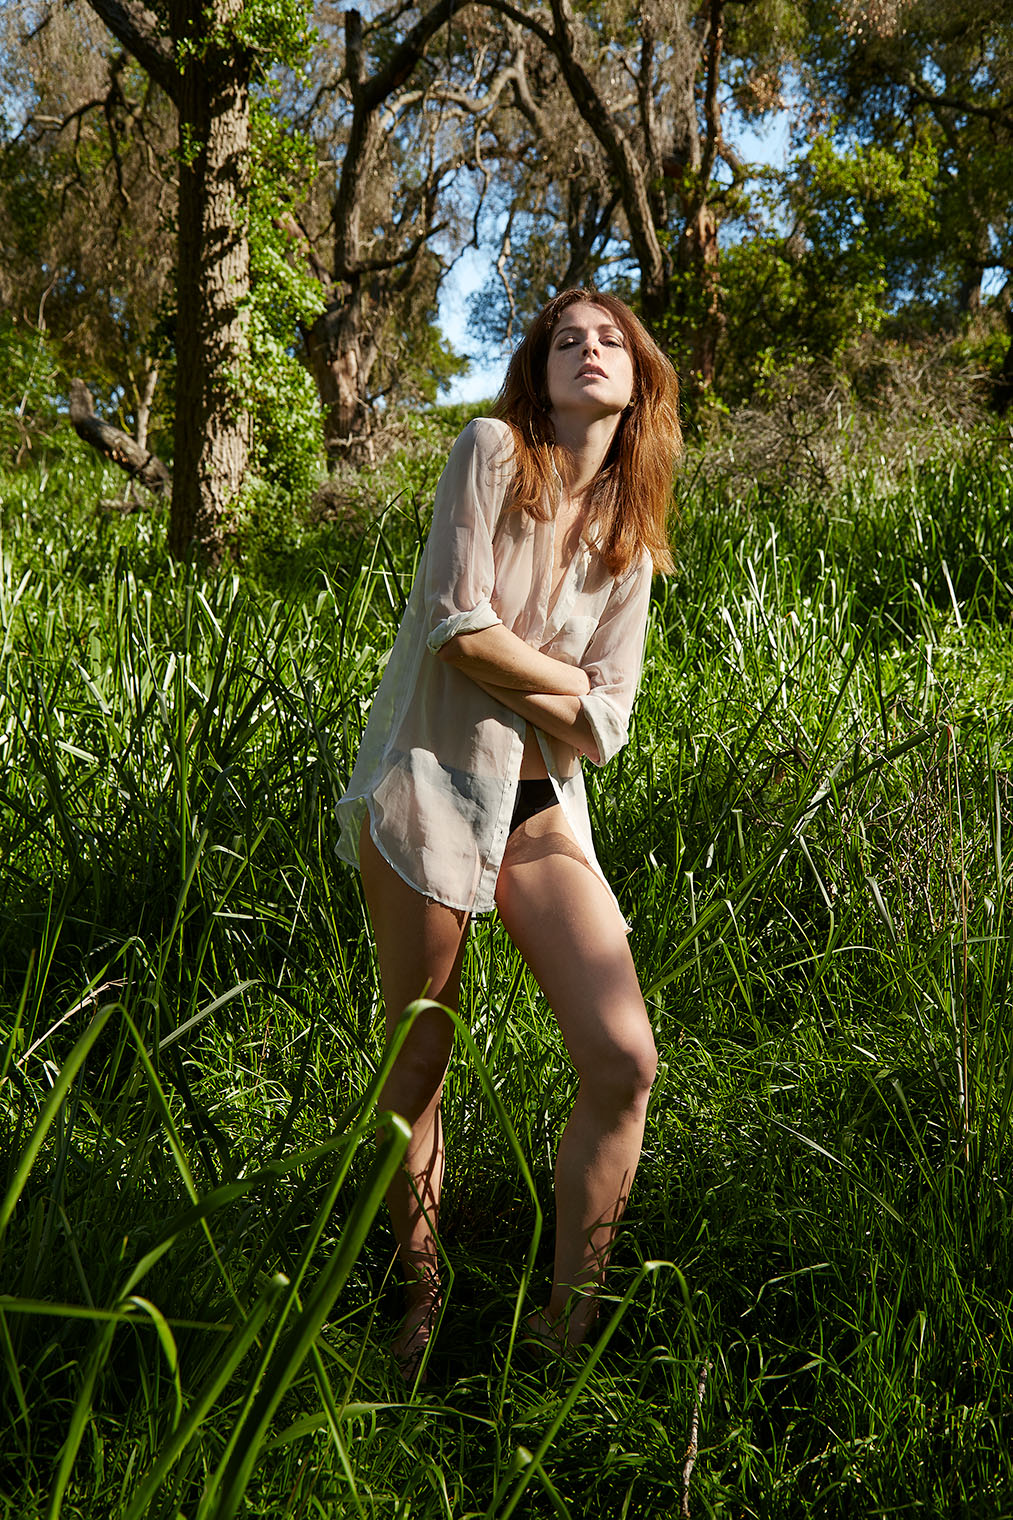 seductive wild girl in the woods luring in her lover - fashion editorial